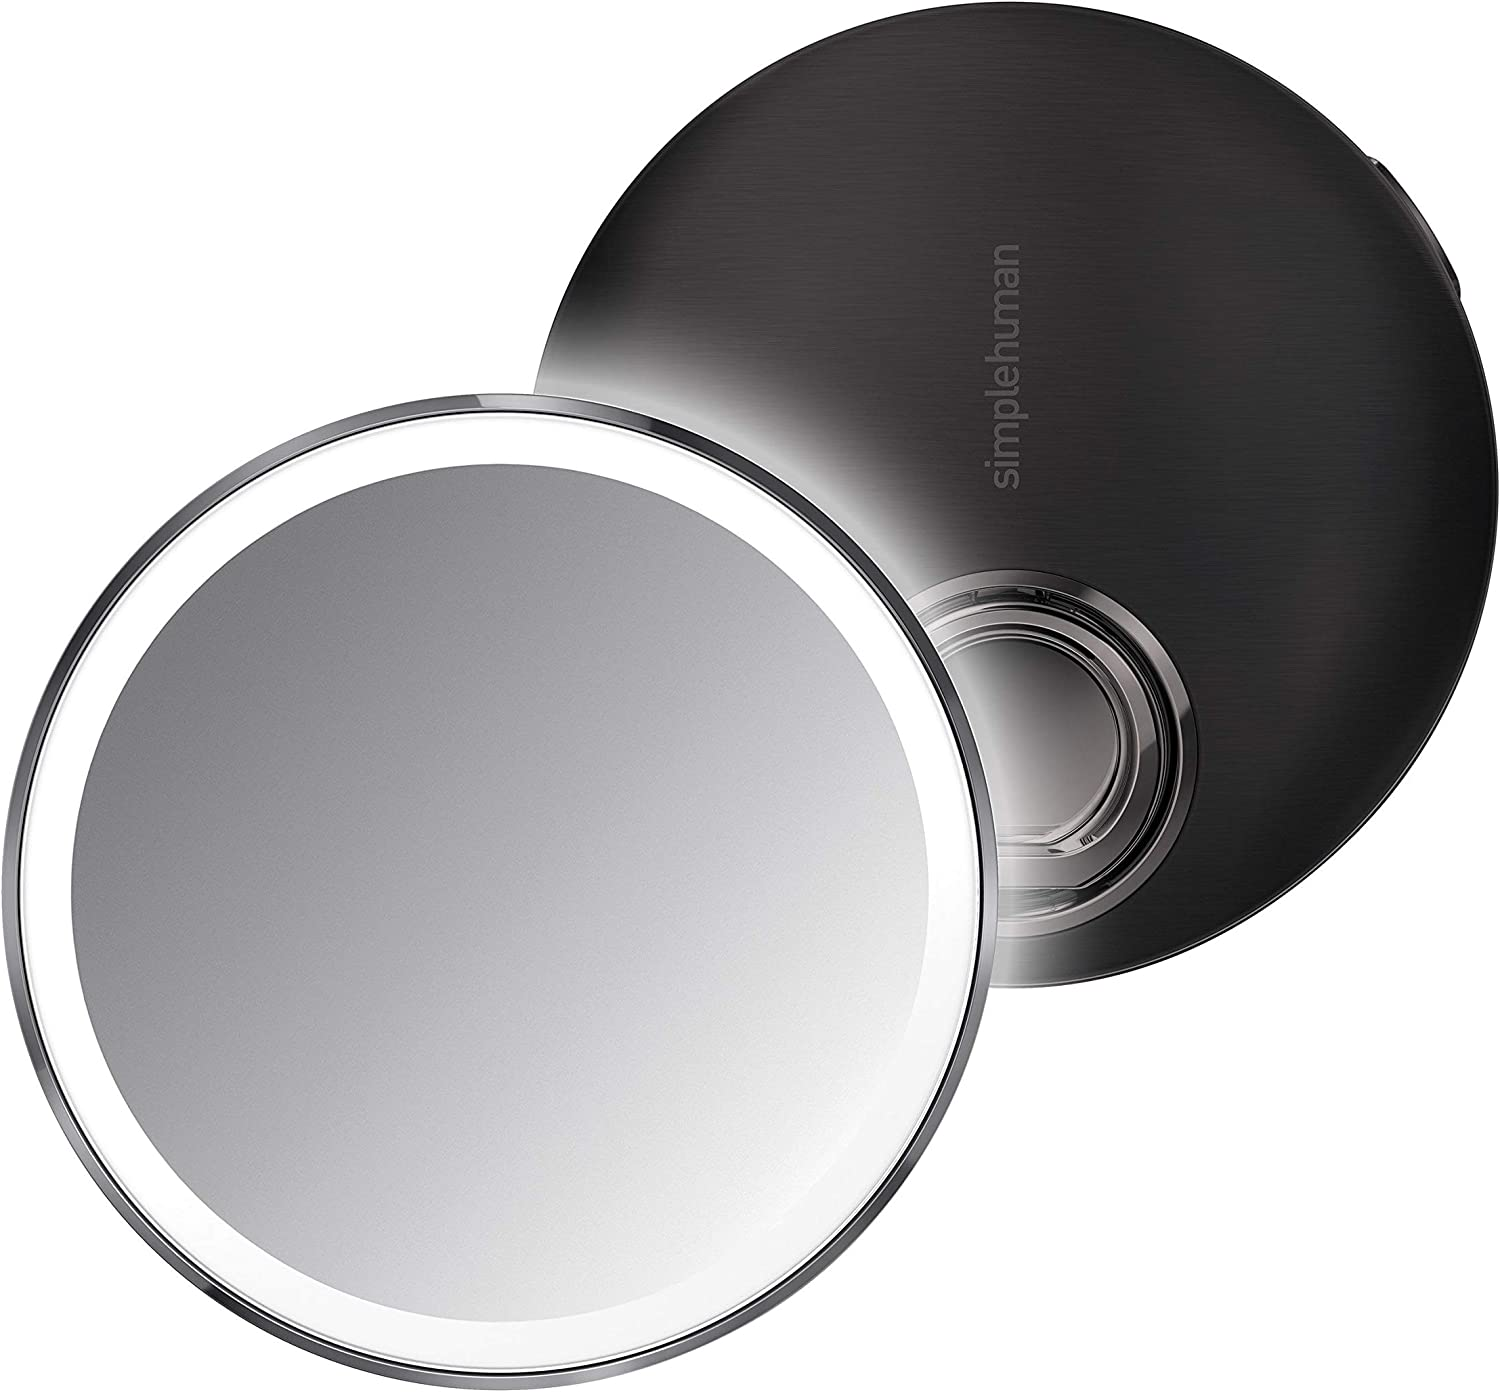 """simplehuman Sensor Mirror Compact 4"""" Round, 3X Magnification,Black Stainless Steel"""